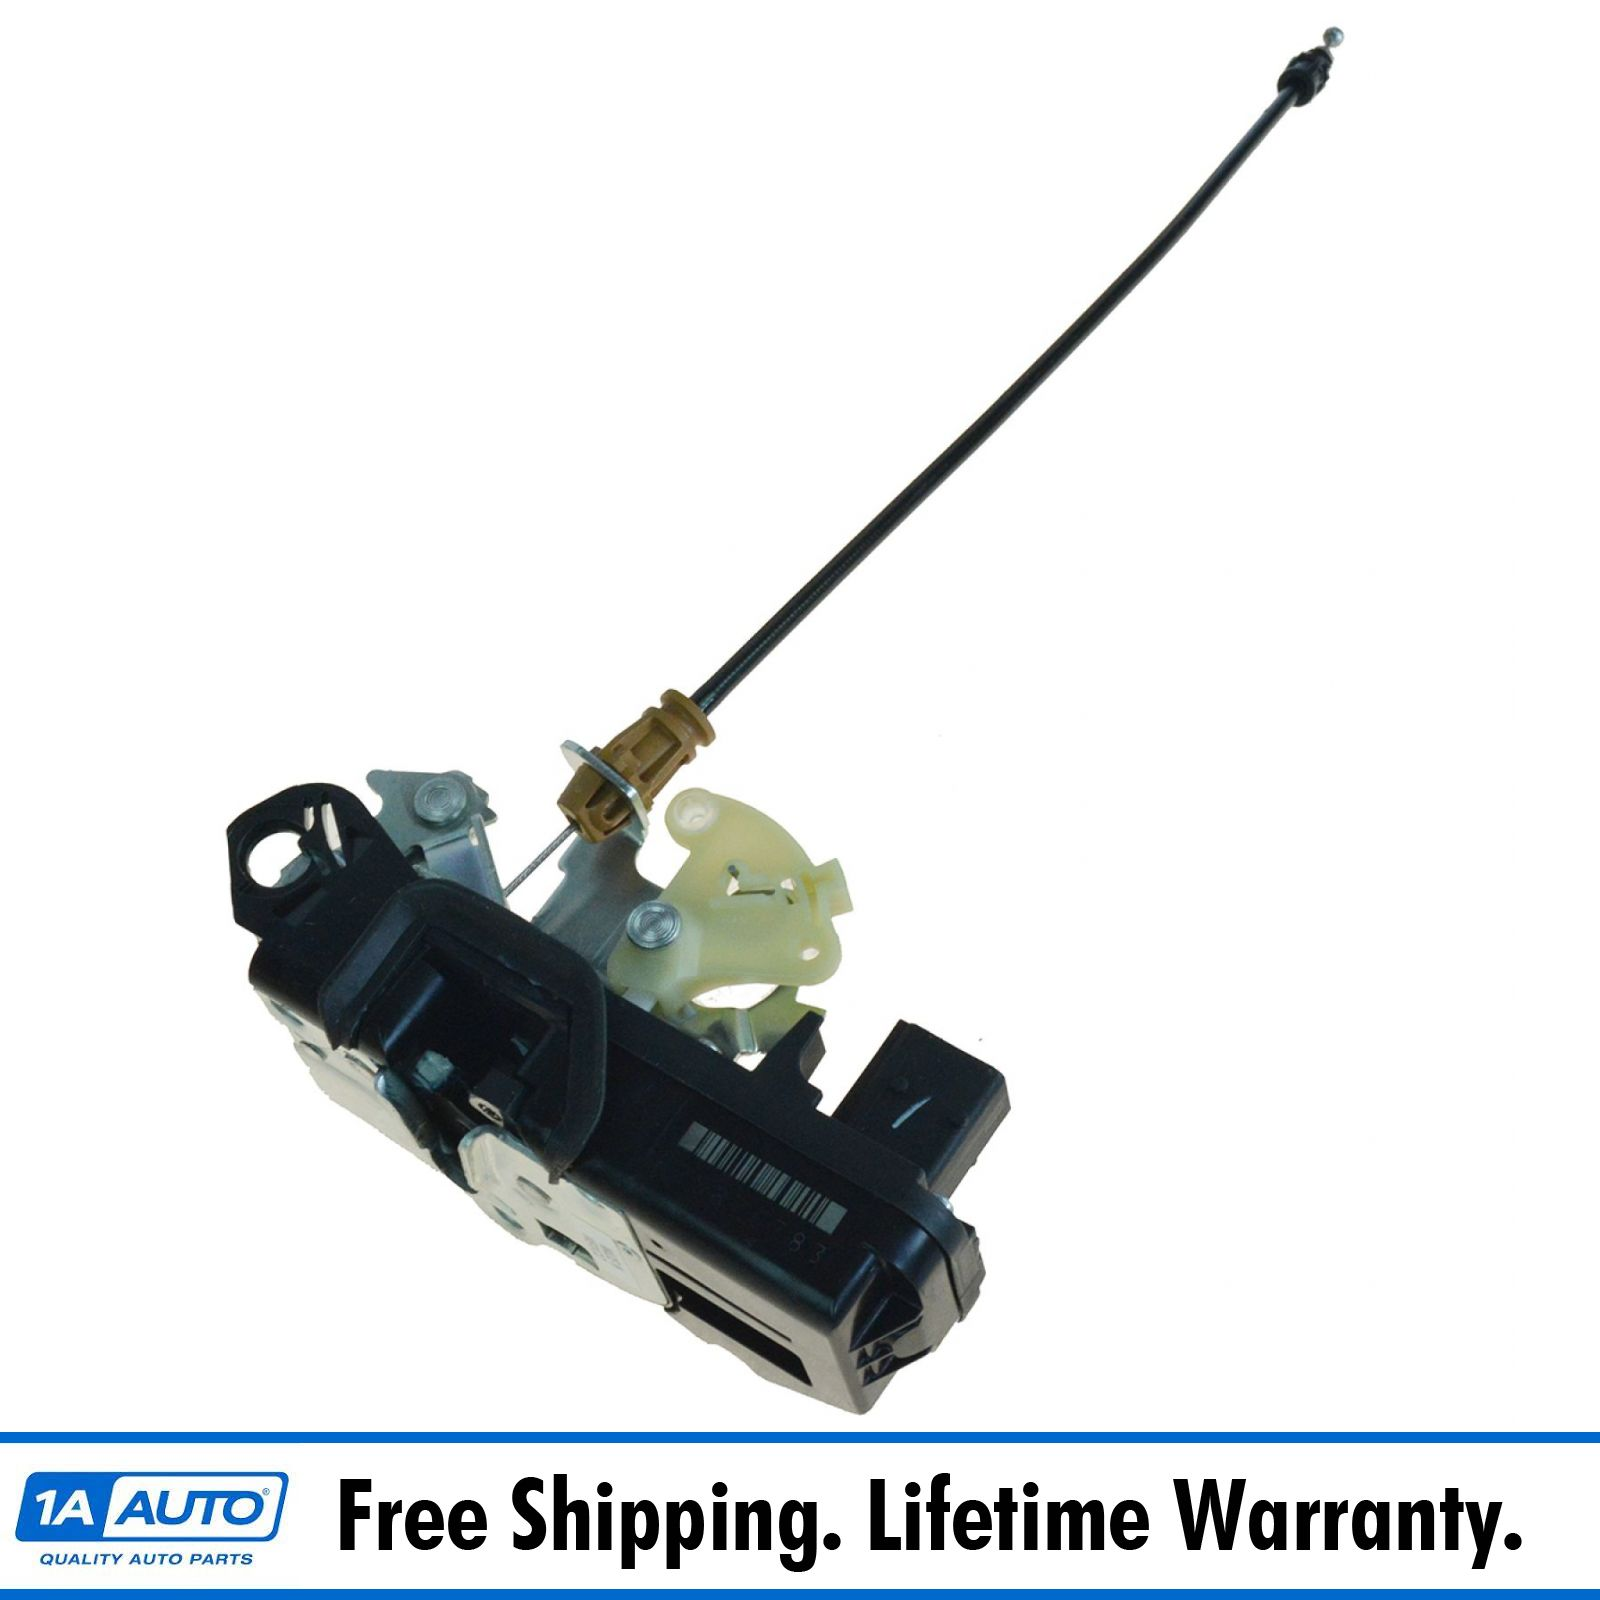 OEM 25876383 Door Lock Actuator /& Latch Assembly RH Front for Chevy GMC Truck